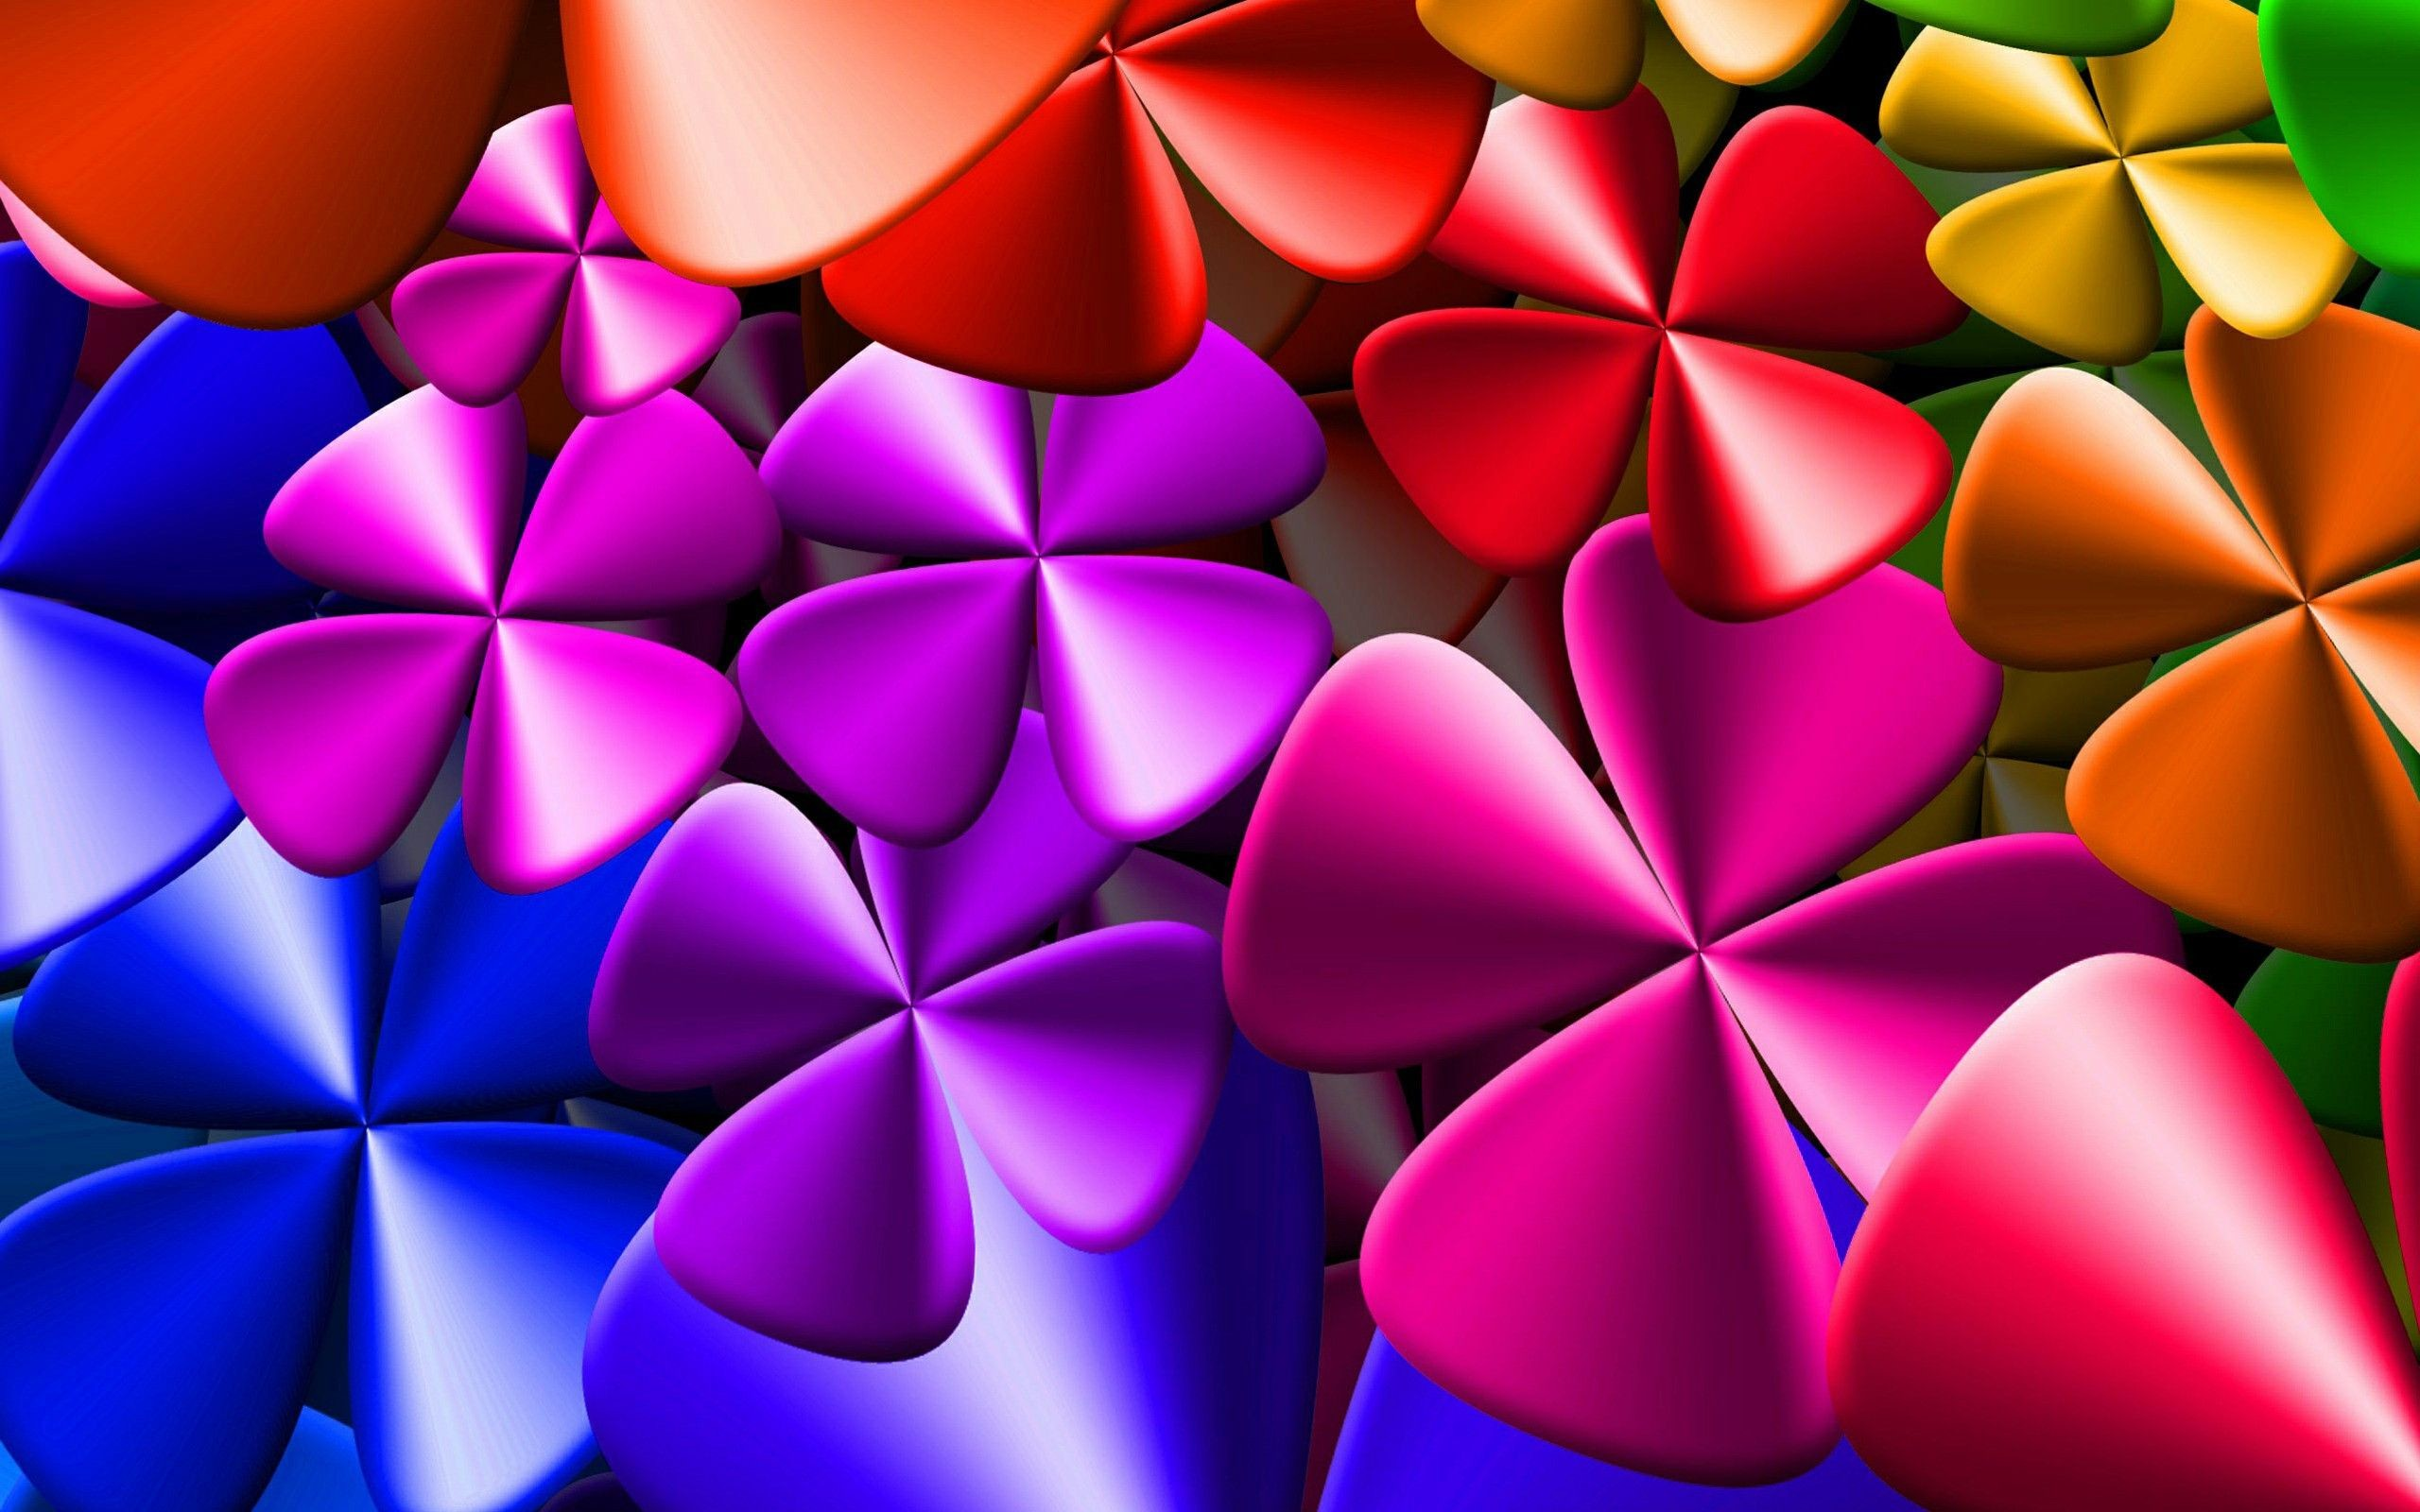 Colorful 3d Wallpaper 69 Pictures